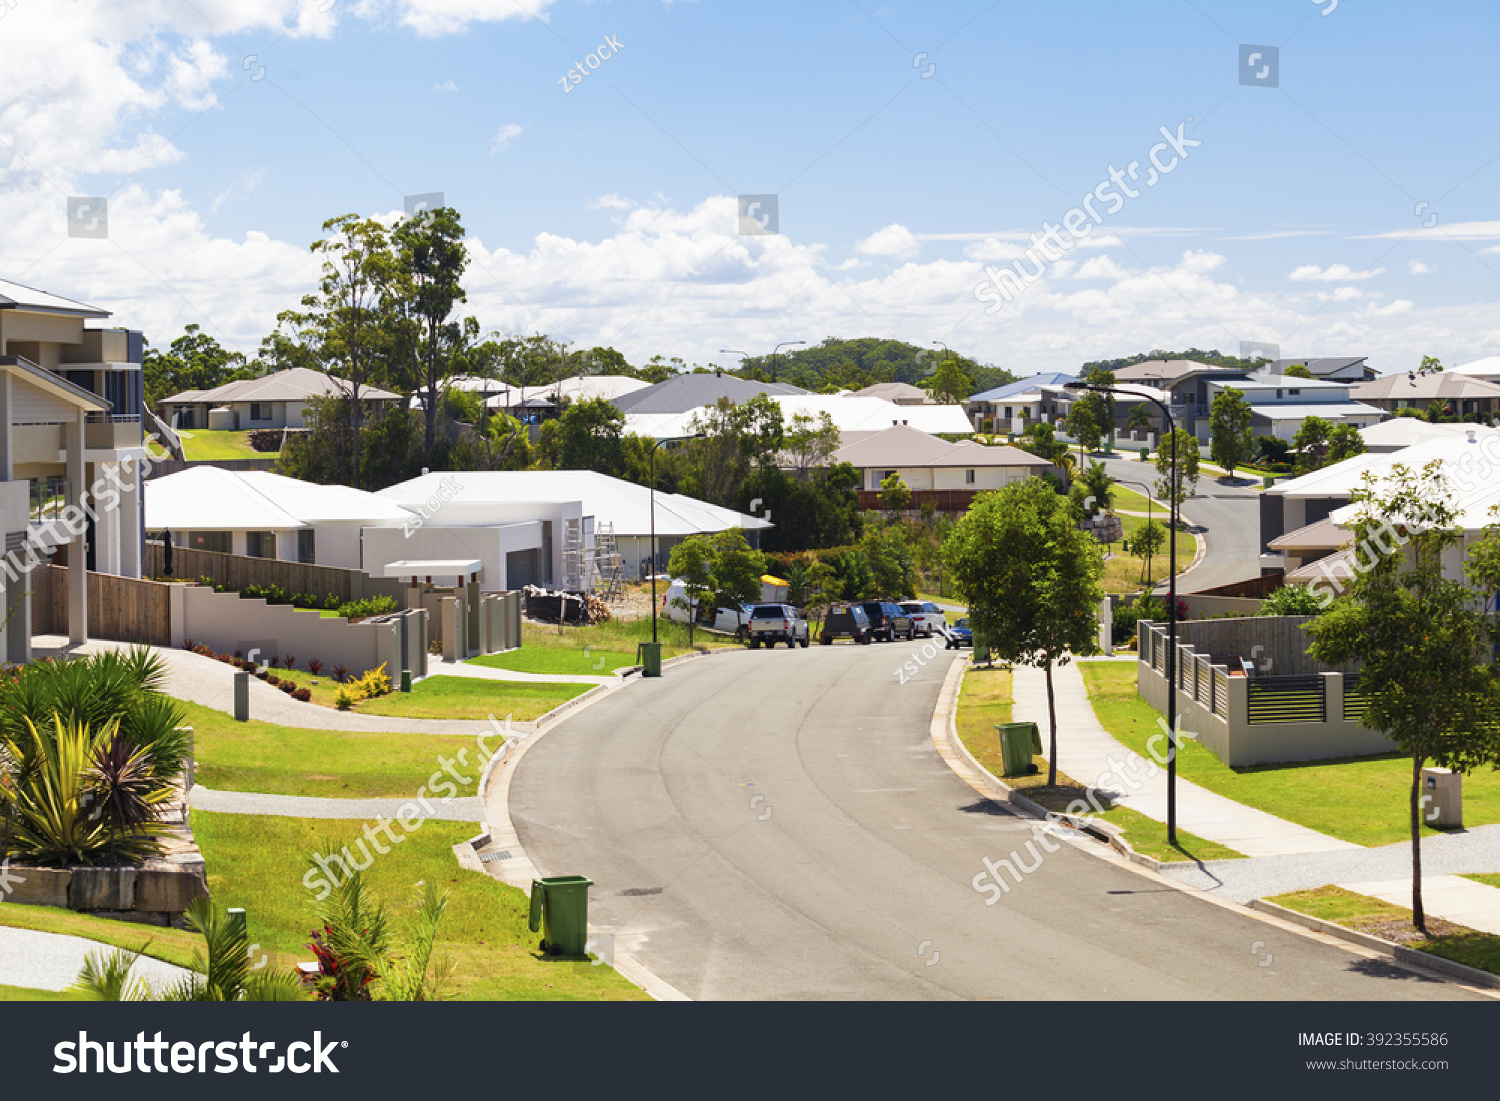 Suburban australian street during the day #392355586